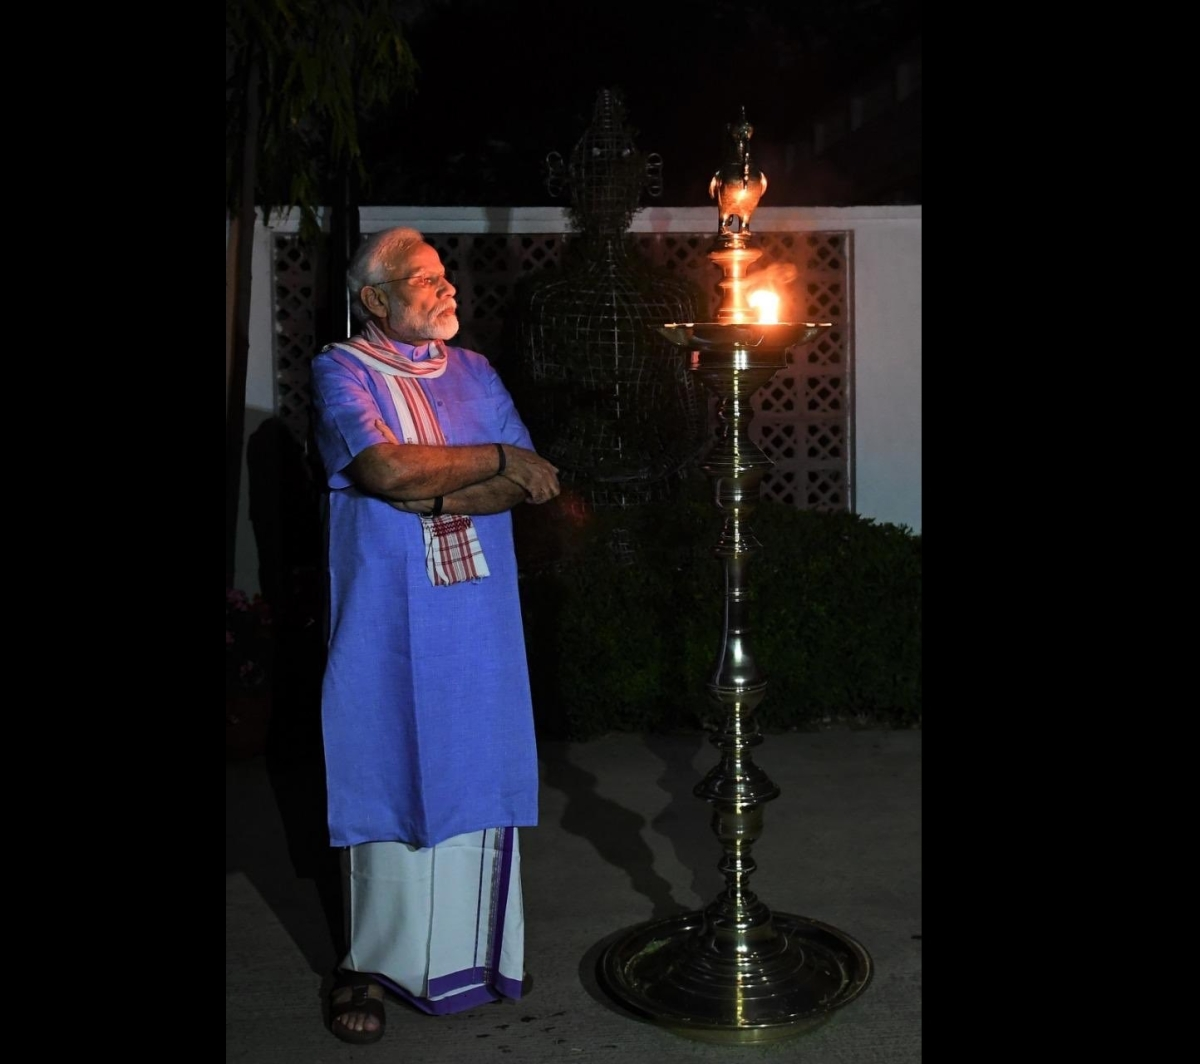 Lord of Light? PM Modi's strikes a pose as he lights a lamp in darkness - see pics